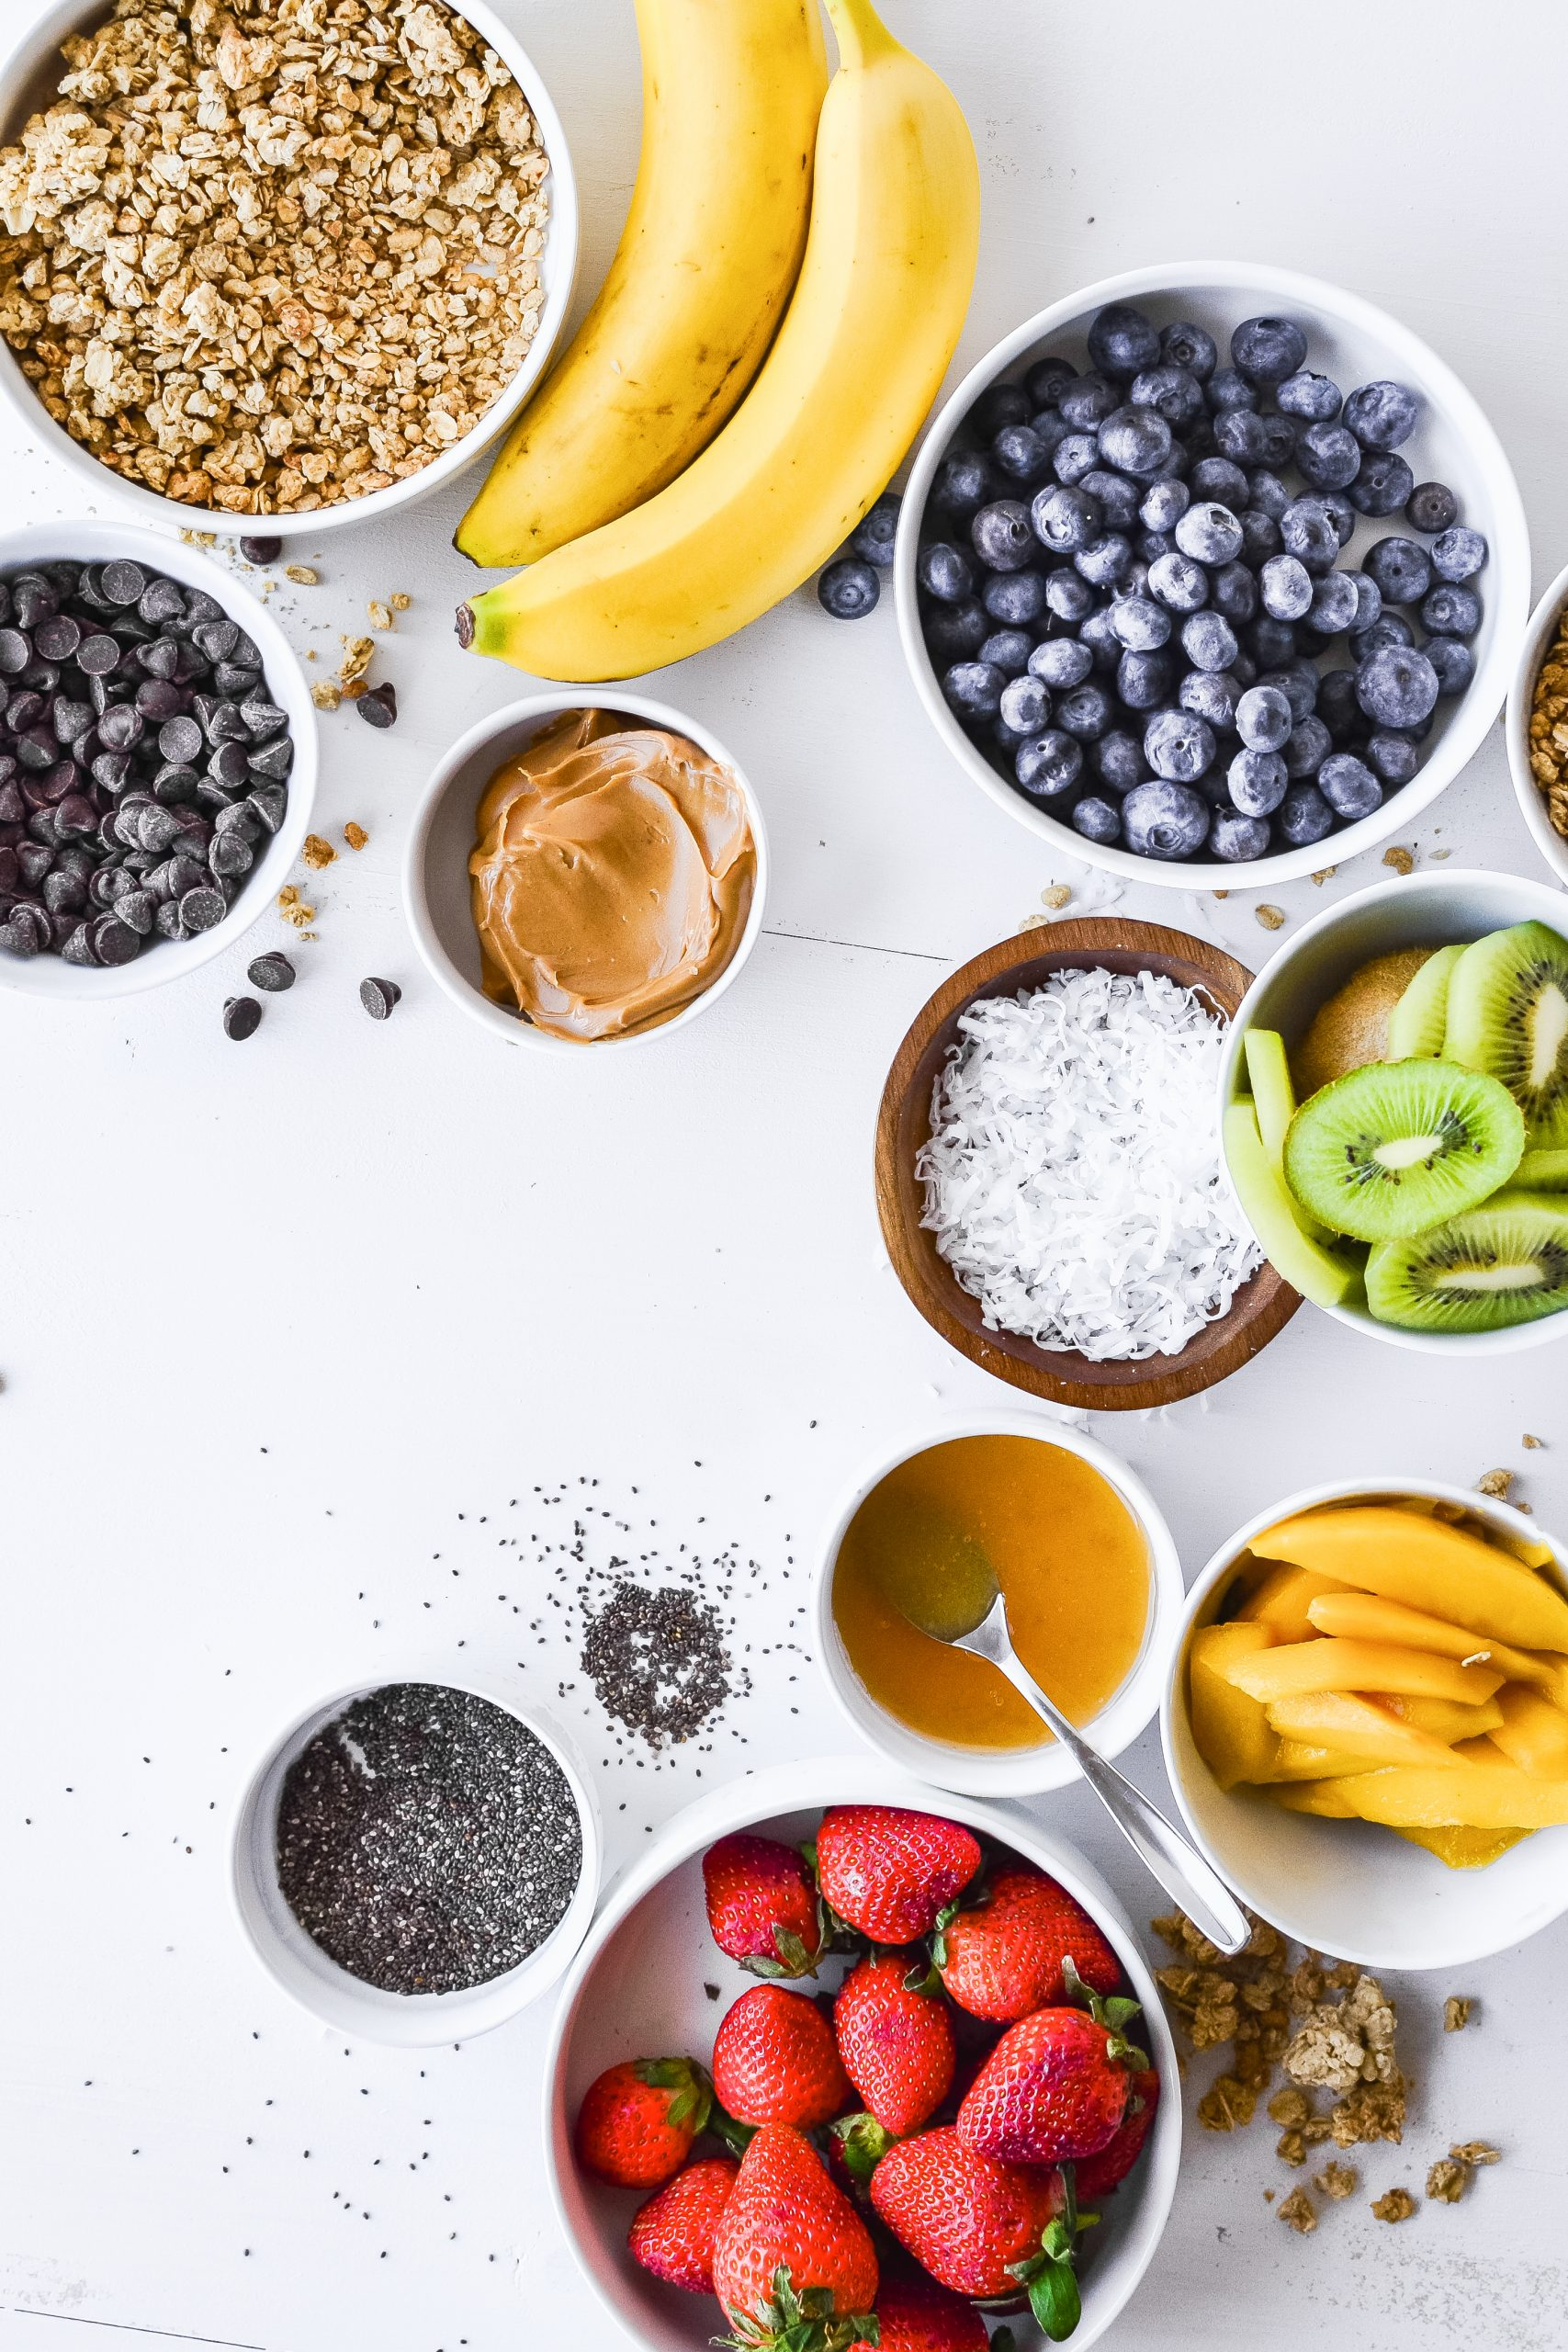 possible topping ingredients for acai bowls